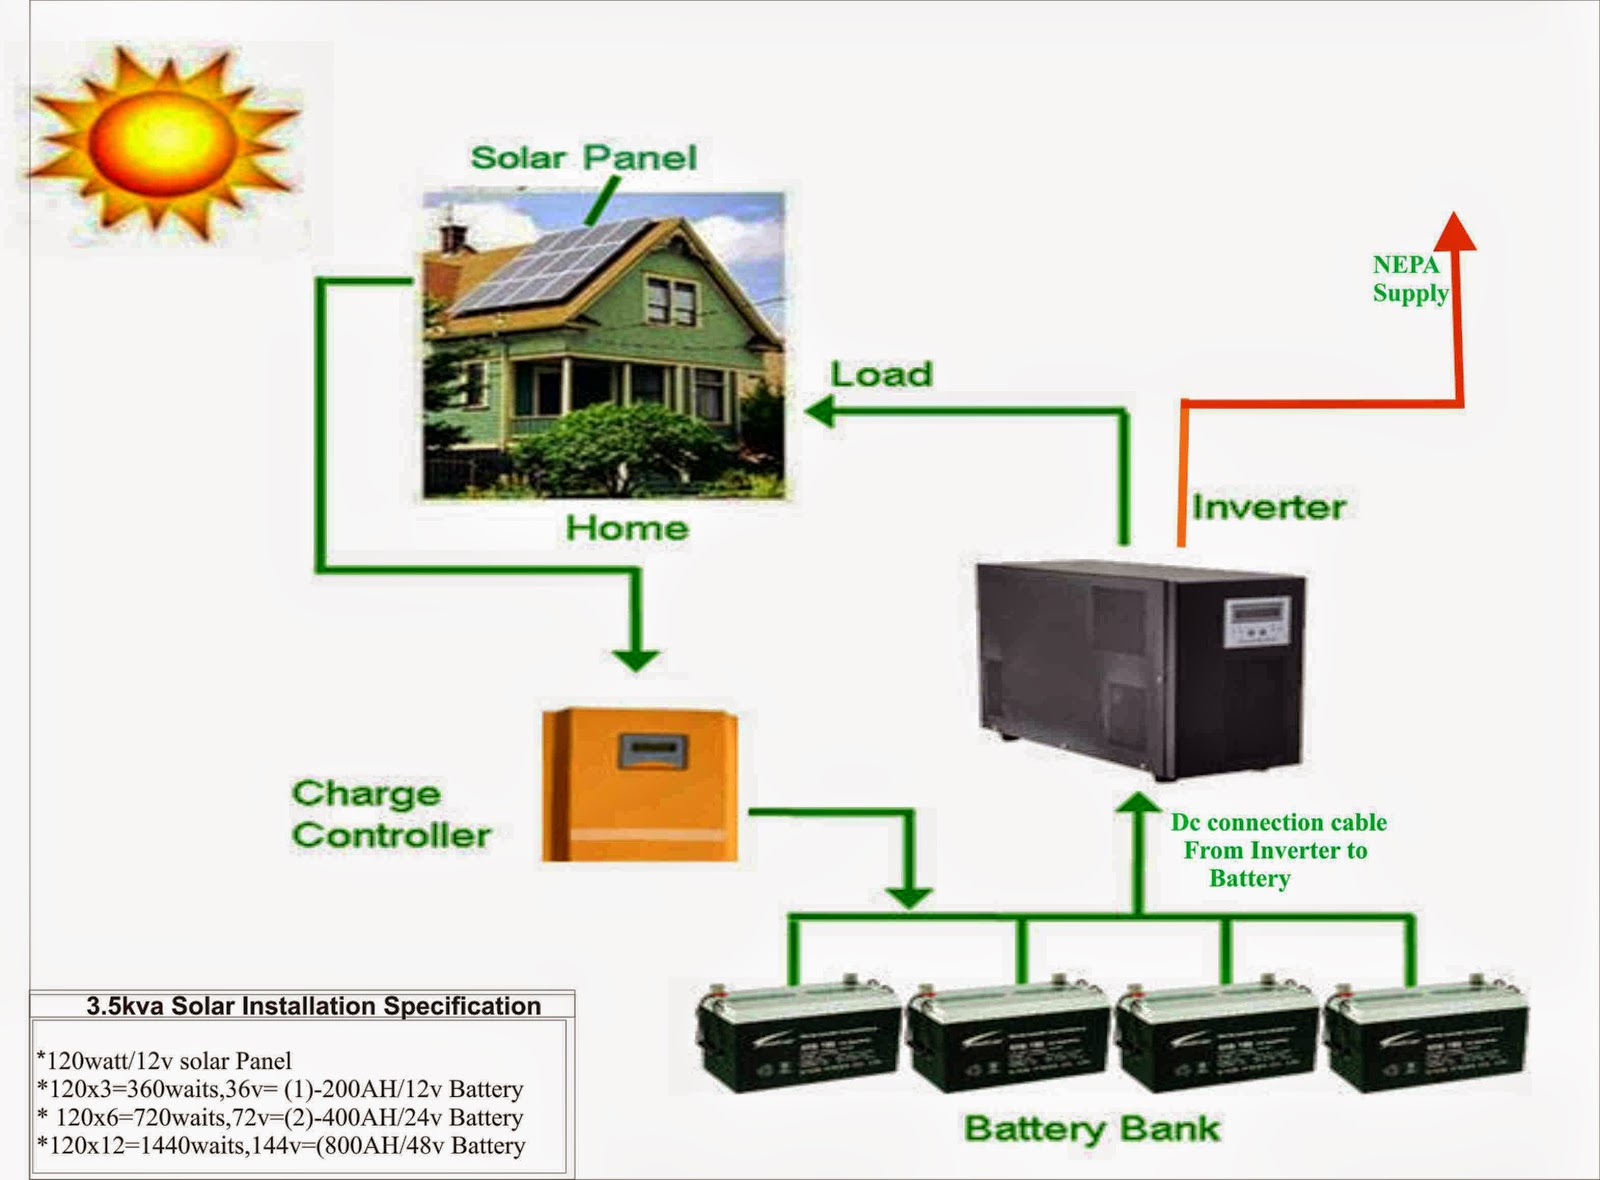 Inverter And Solar Expert In Nigeria Street Light Energy Cctv 12v Wiring Diagram Energydeepcycle Batteryinvertercctvbiometric Access Control Dstv Computer Engineer Industrial Electrical Installation Enegineer